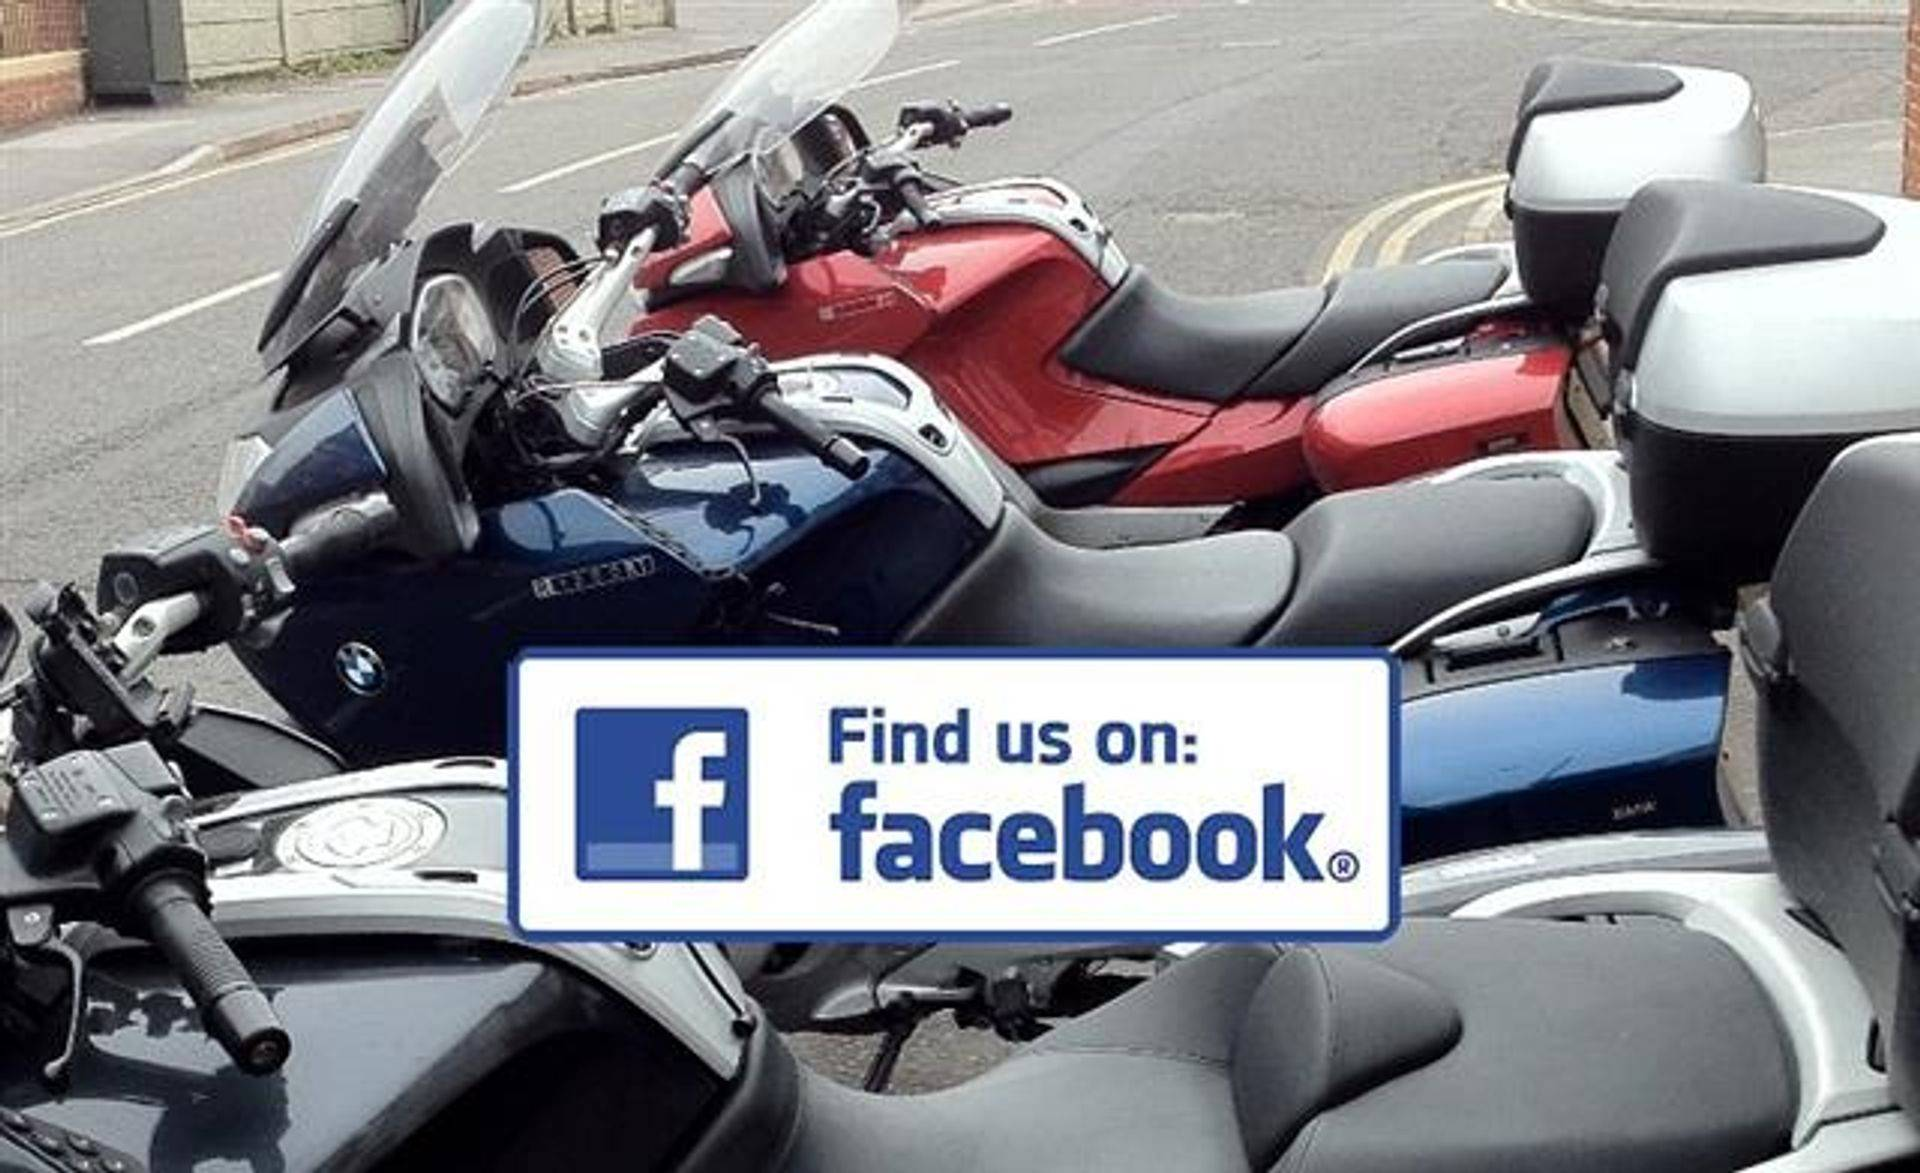 Find us and like us on facebook